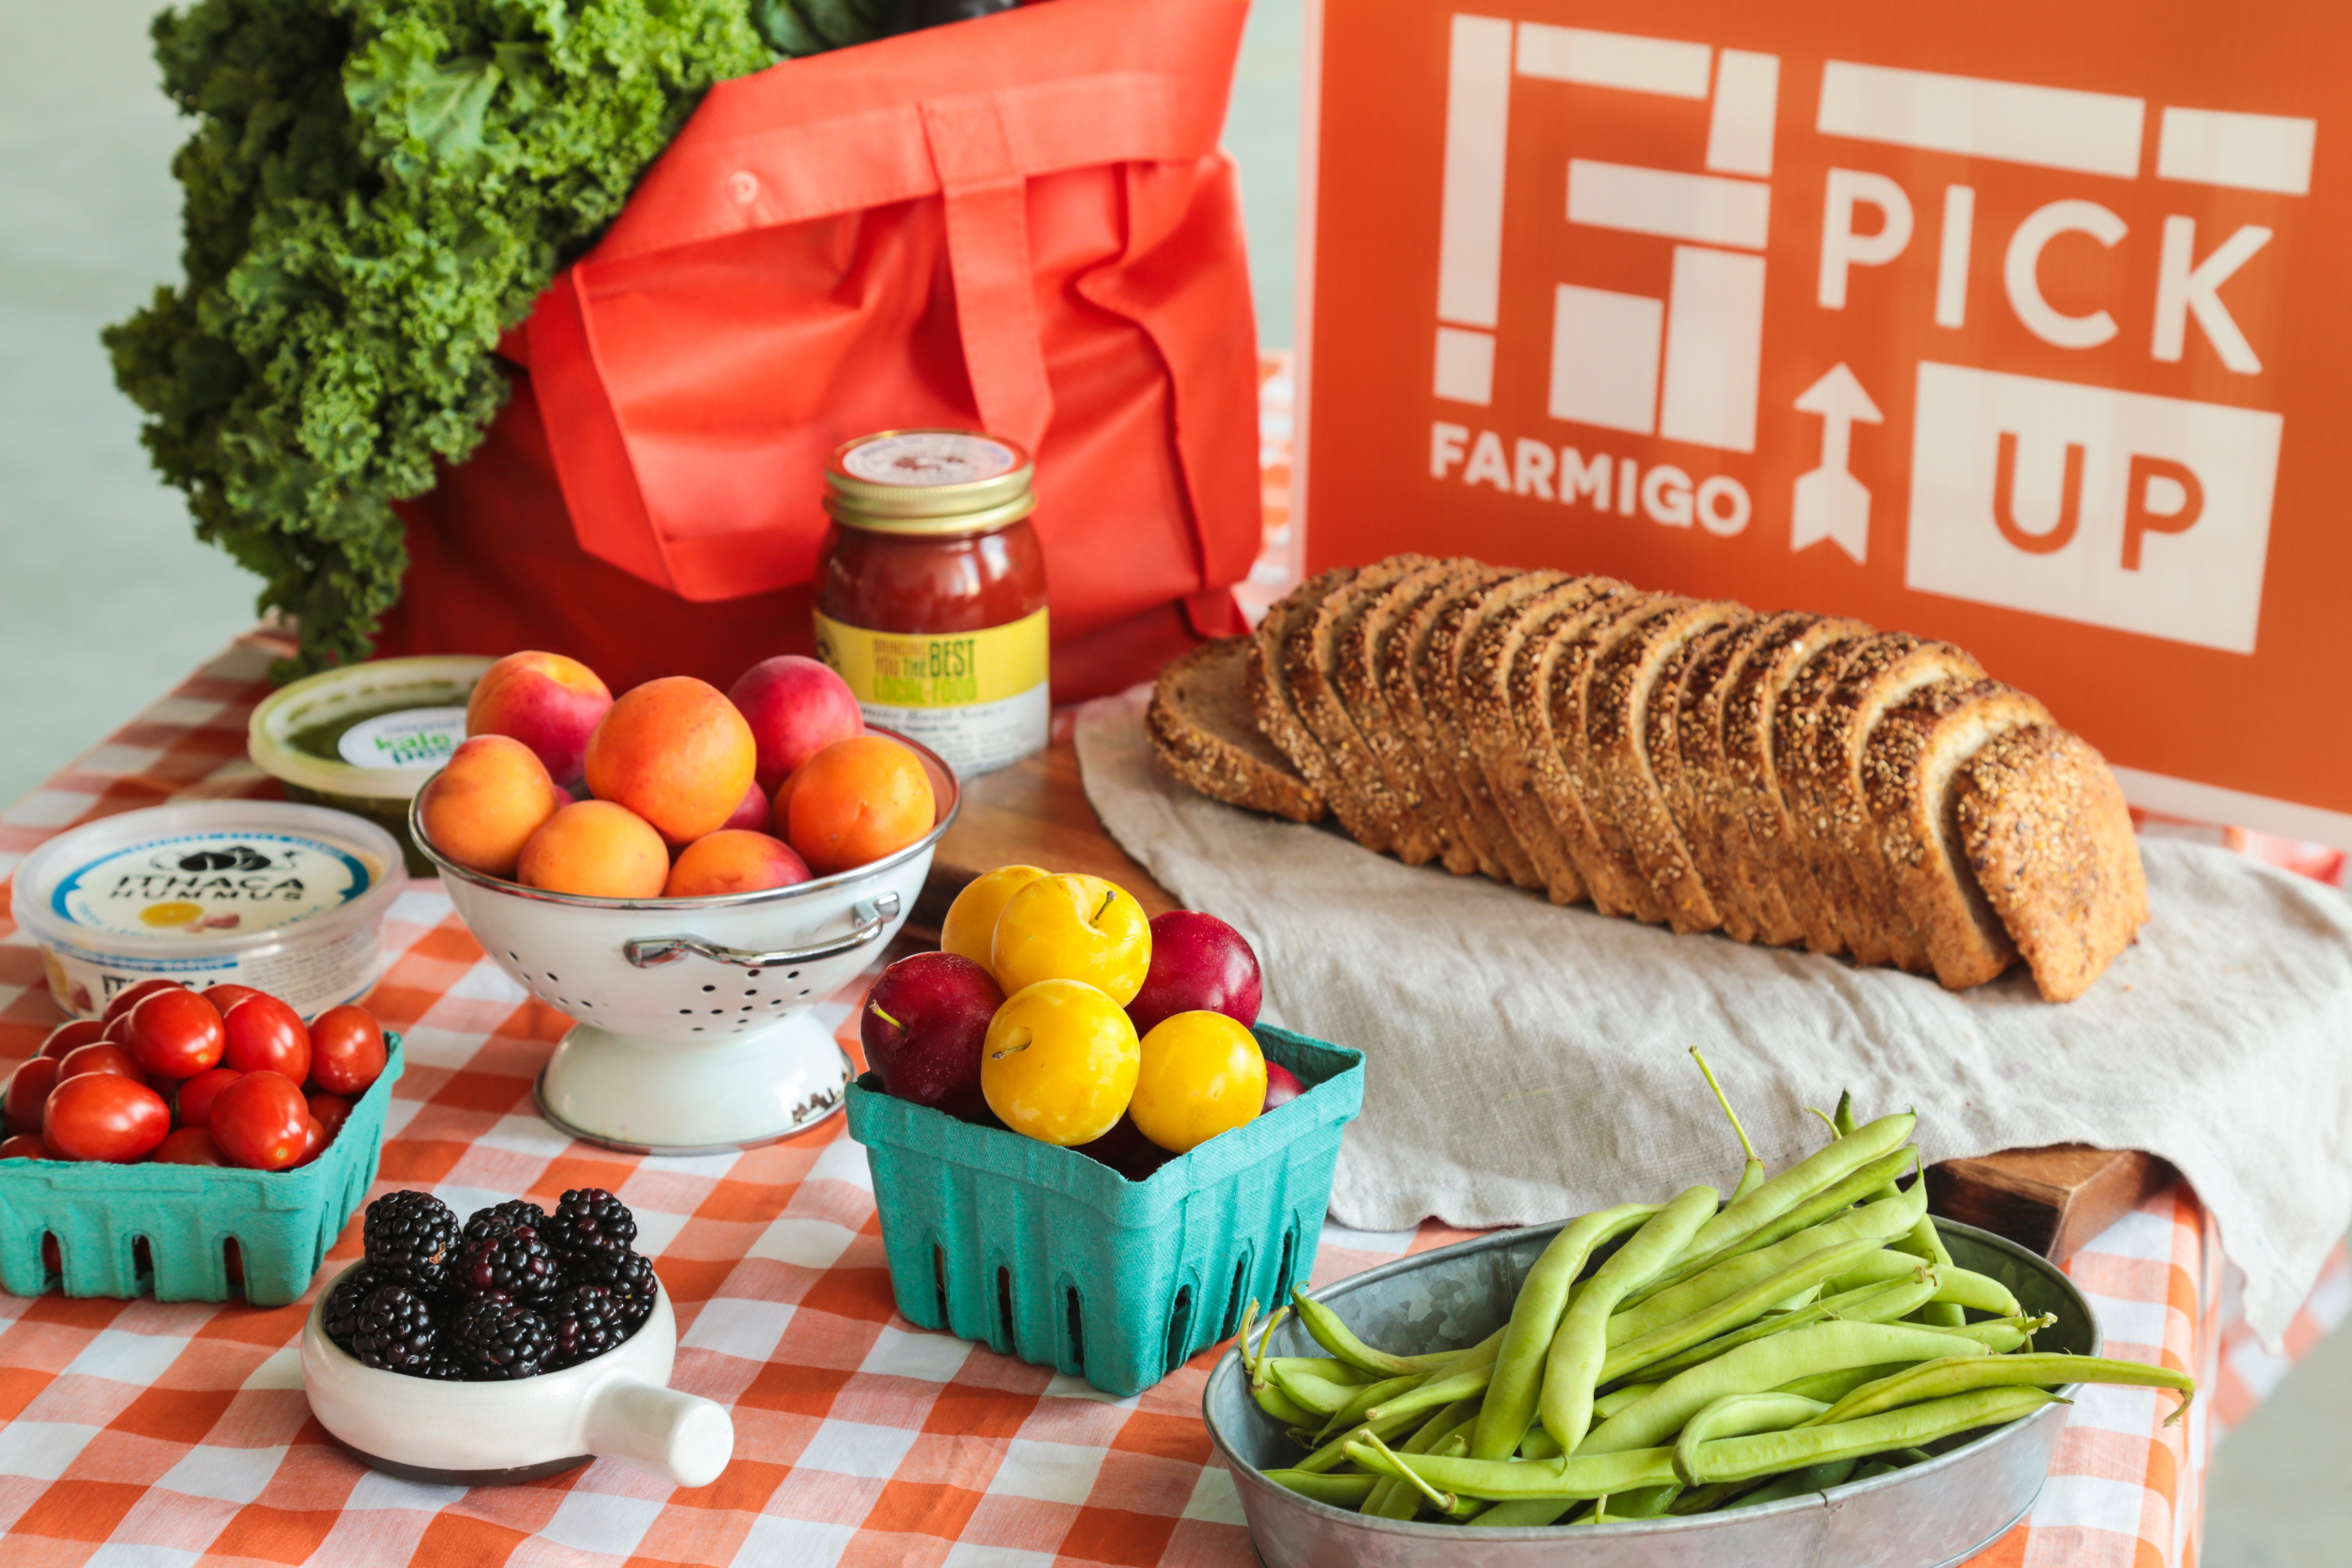 Some of the farm-to-table products sold by Farmigo